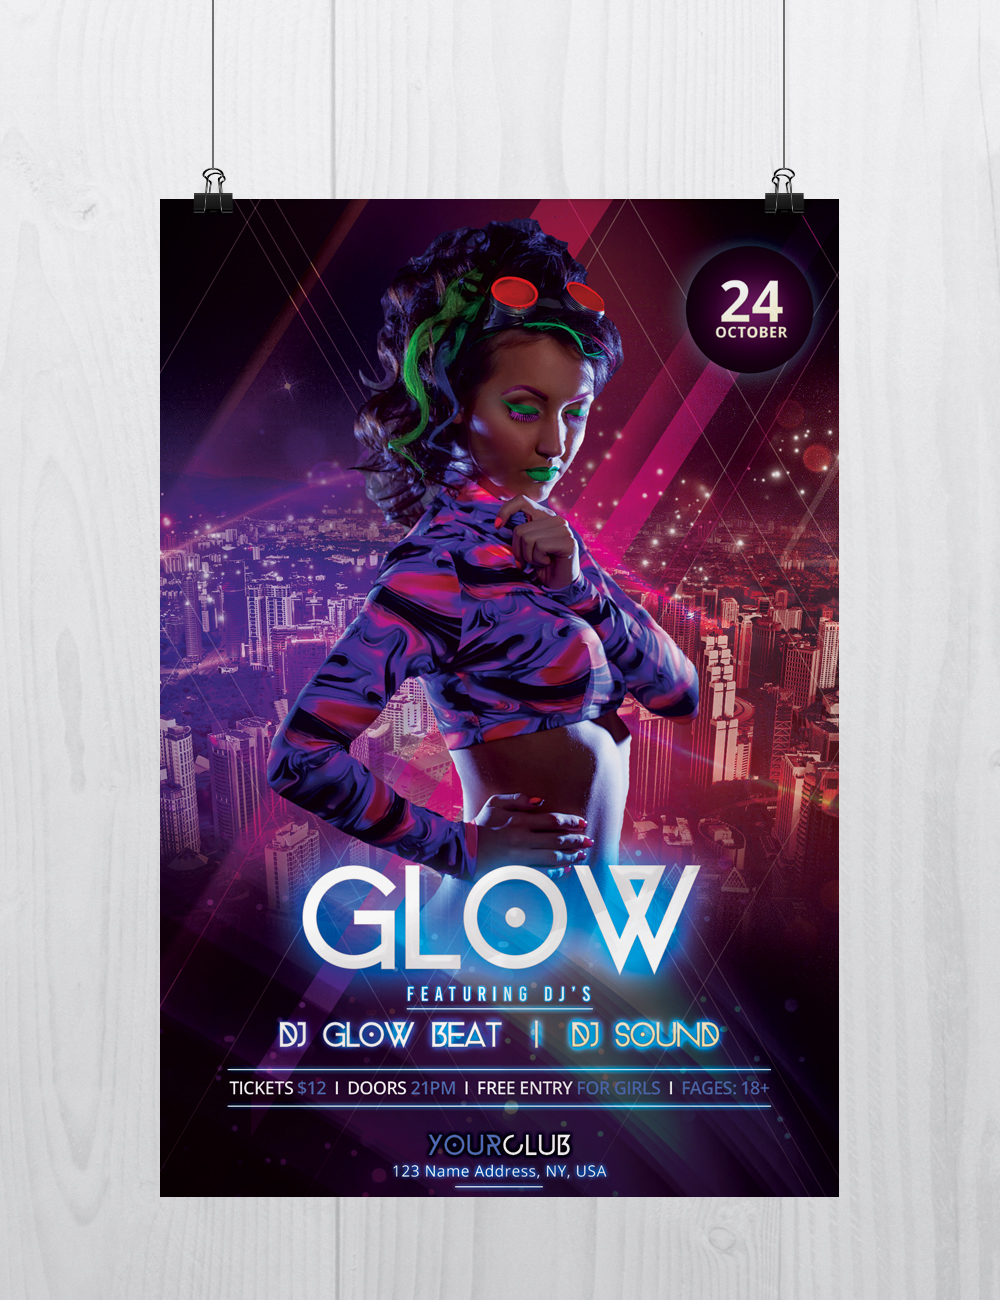 Glow And Neon Free Party Psd Flyer Template By Stockpsd On Deviantart